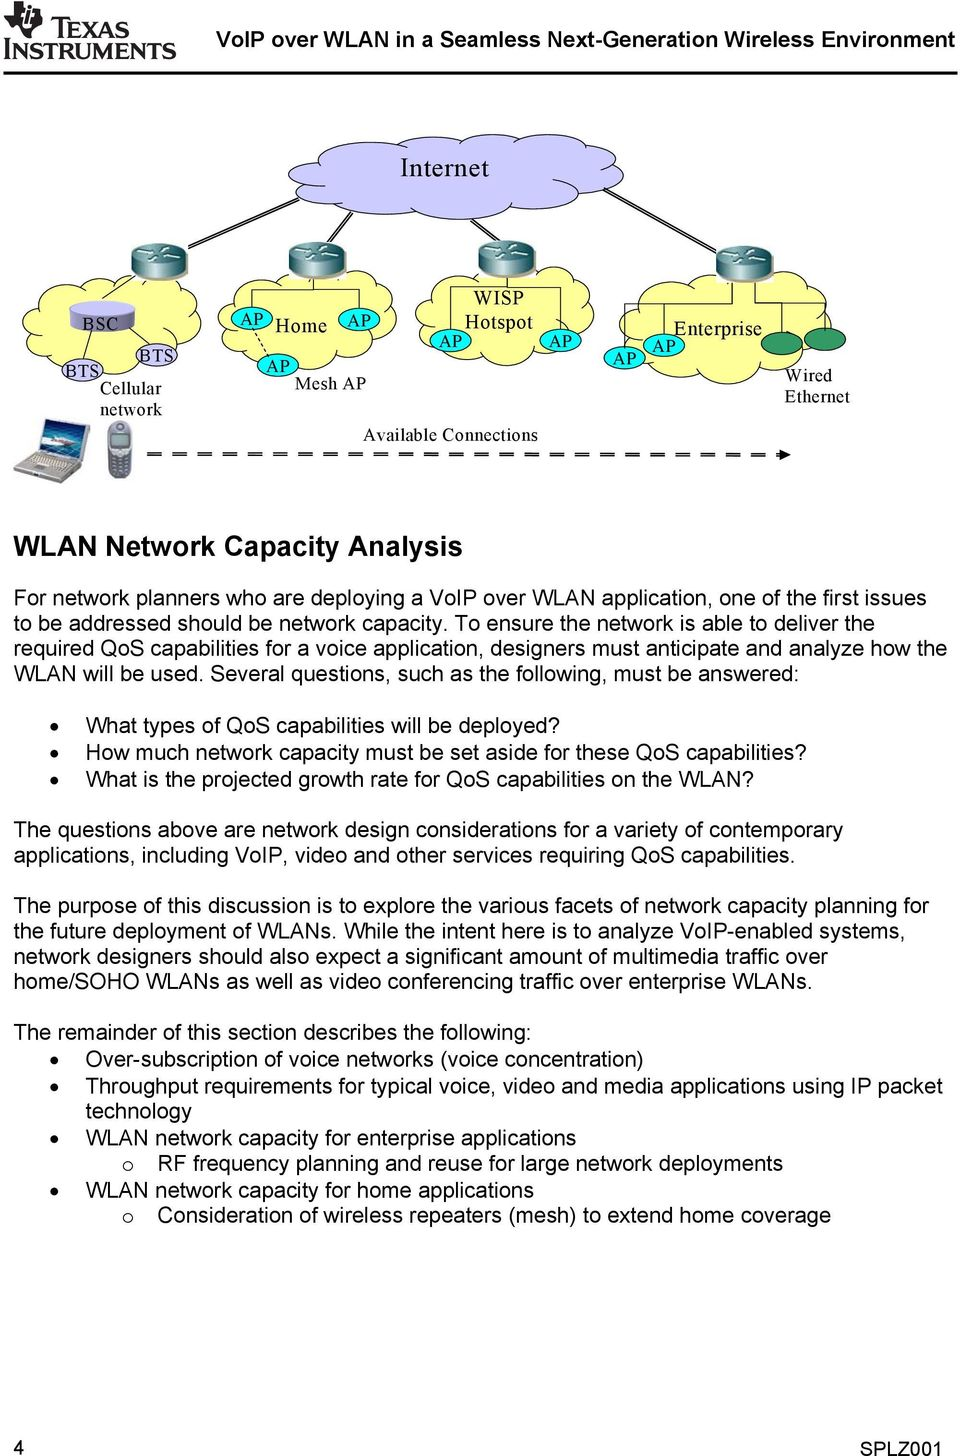 To ensure the network is able to deliver the required QoS capabilities for a voice application, designers must anticipate and analyze how the WLAN will be used.